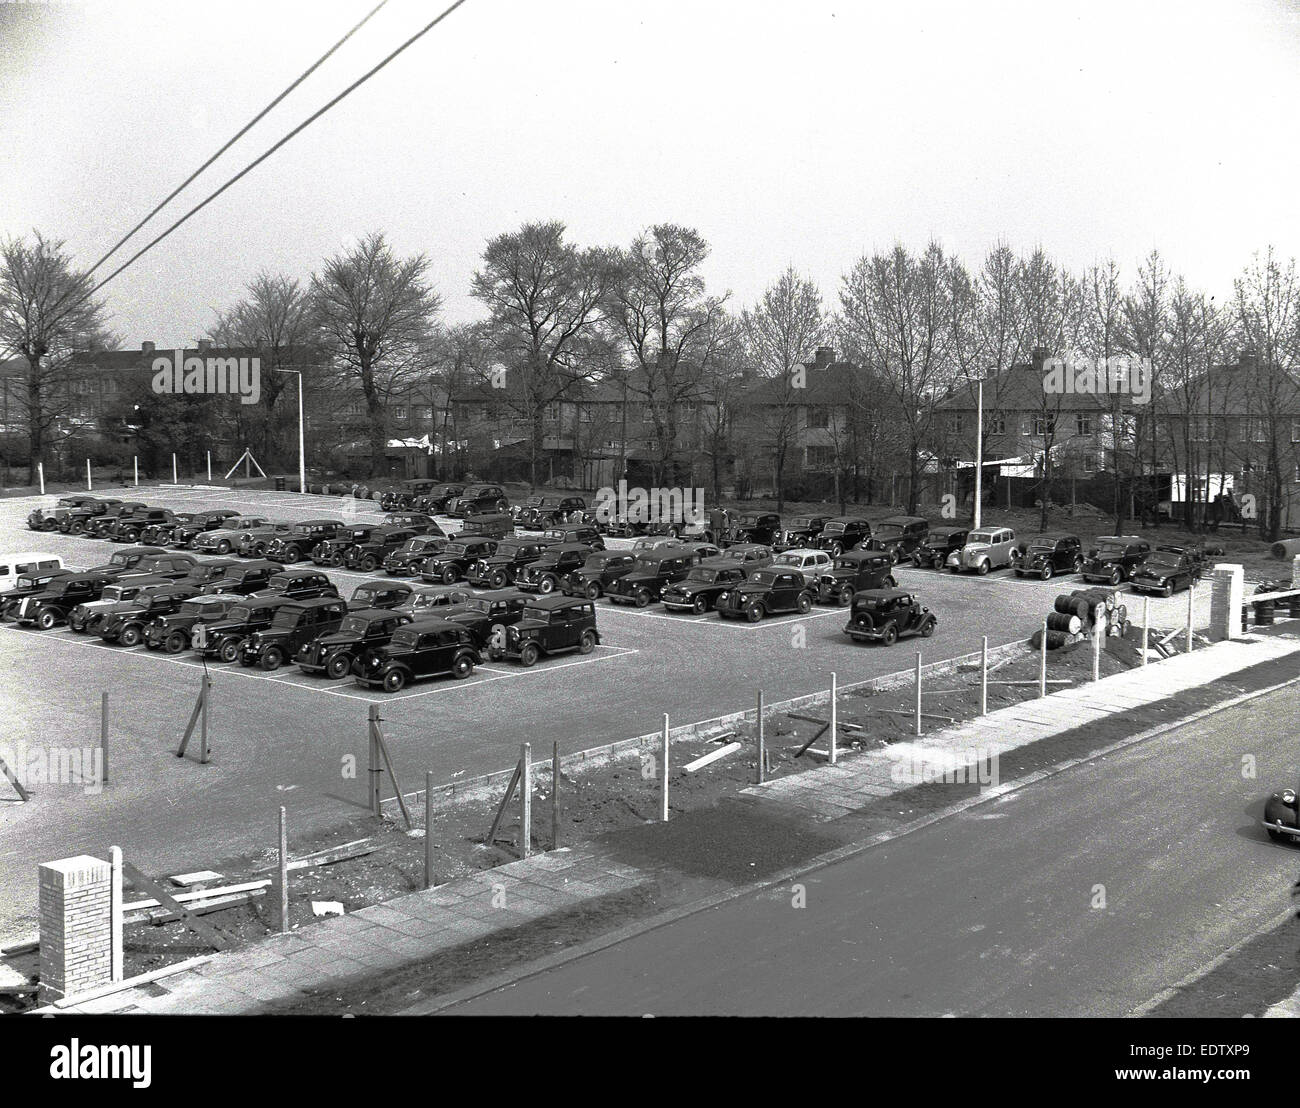 1940s historical picture showing a large number of cars of the era parked together in rows on a large plot outside - Stock Image